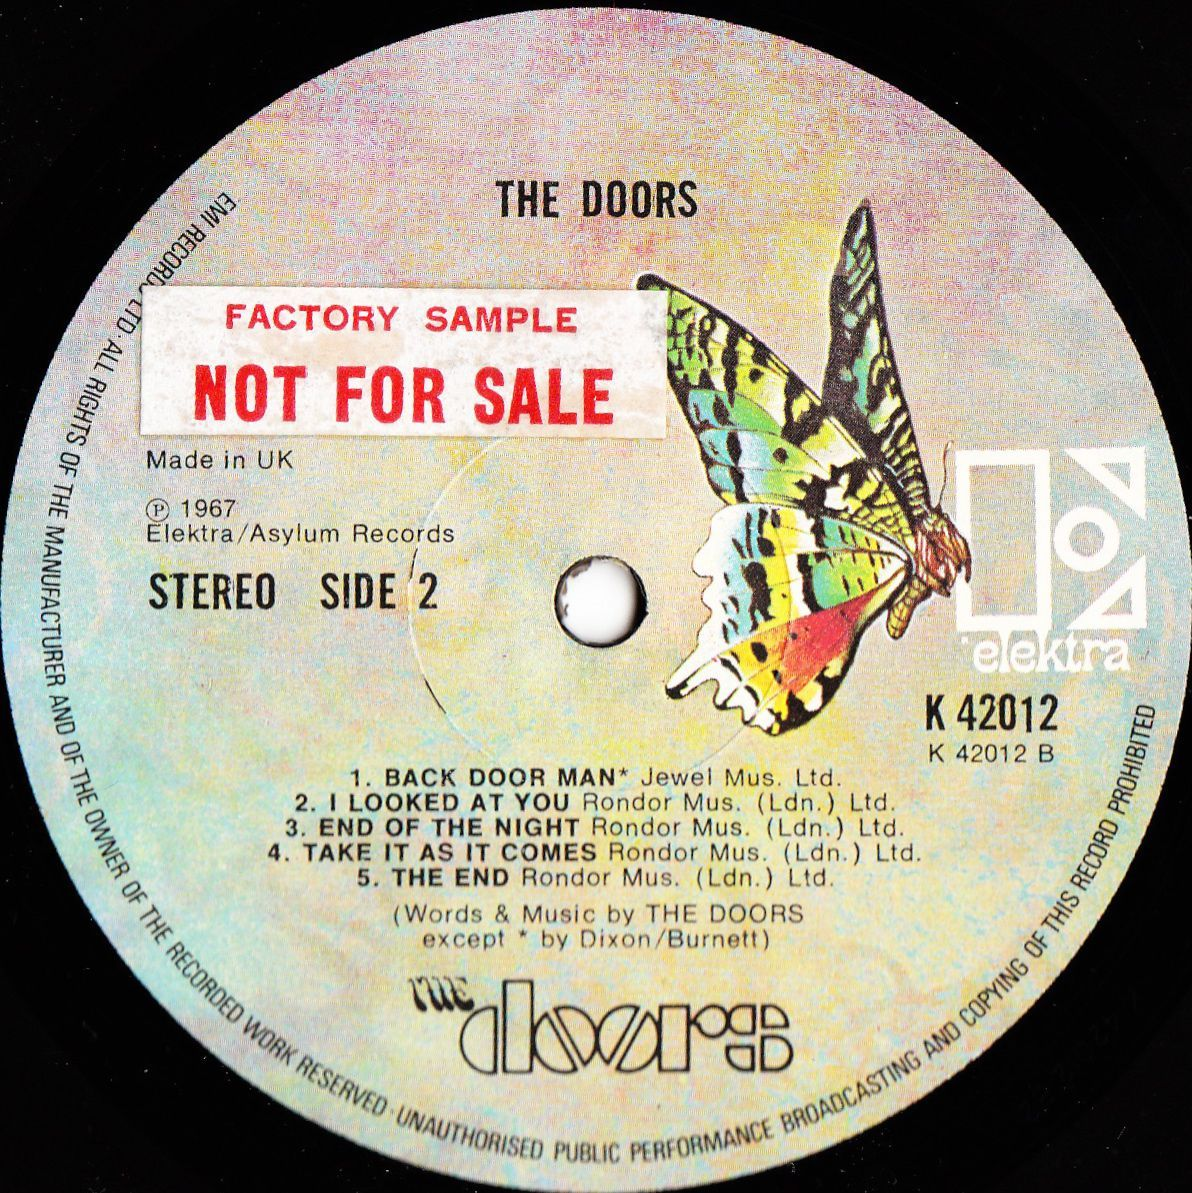 The Doors 1967 \u201cThe Doors\u201d Vinyl Label from United Kingdom Factory S&le NOT FOR